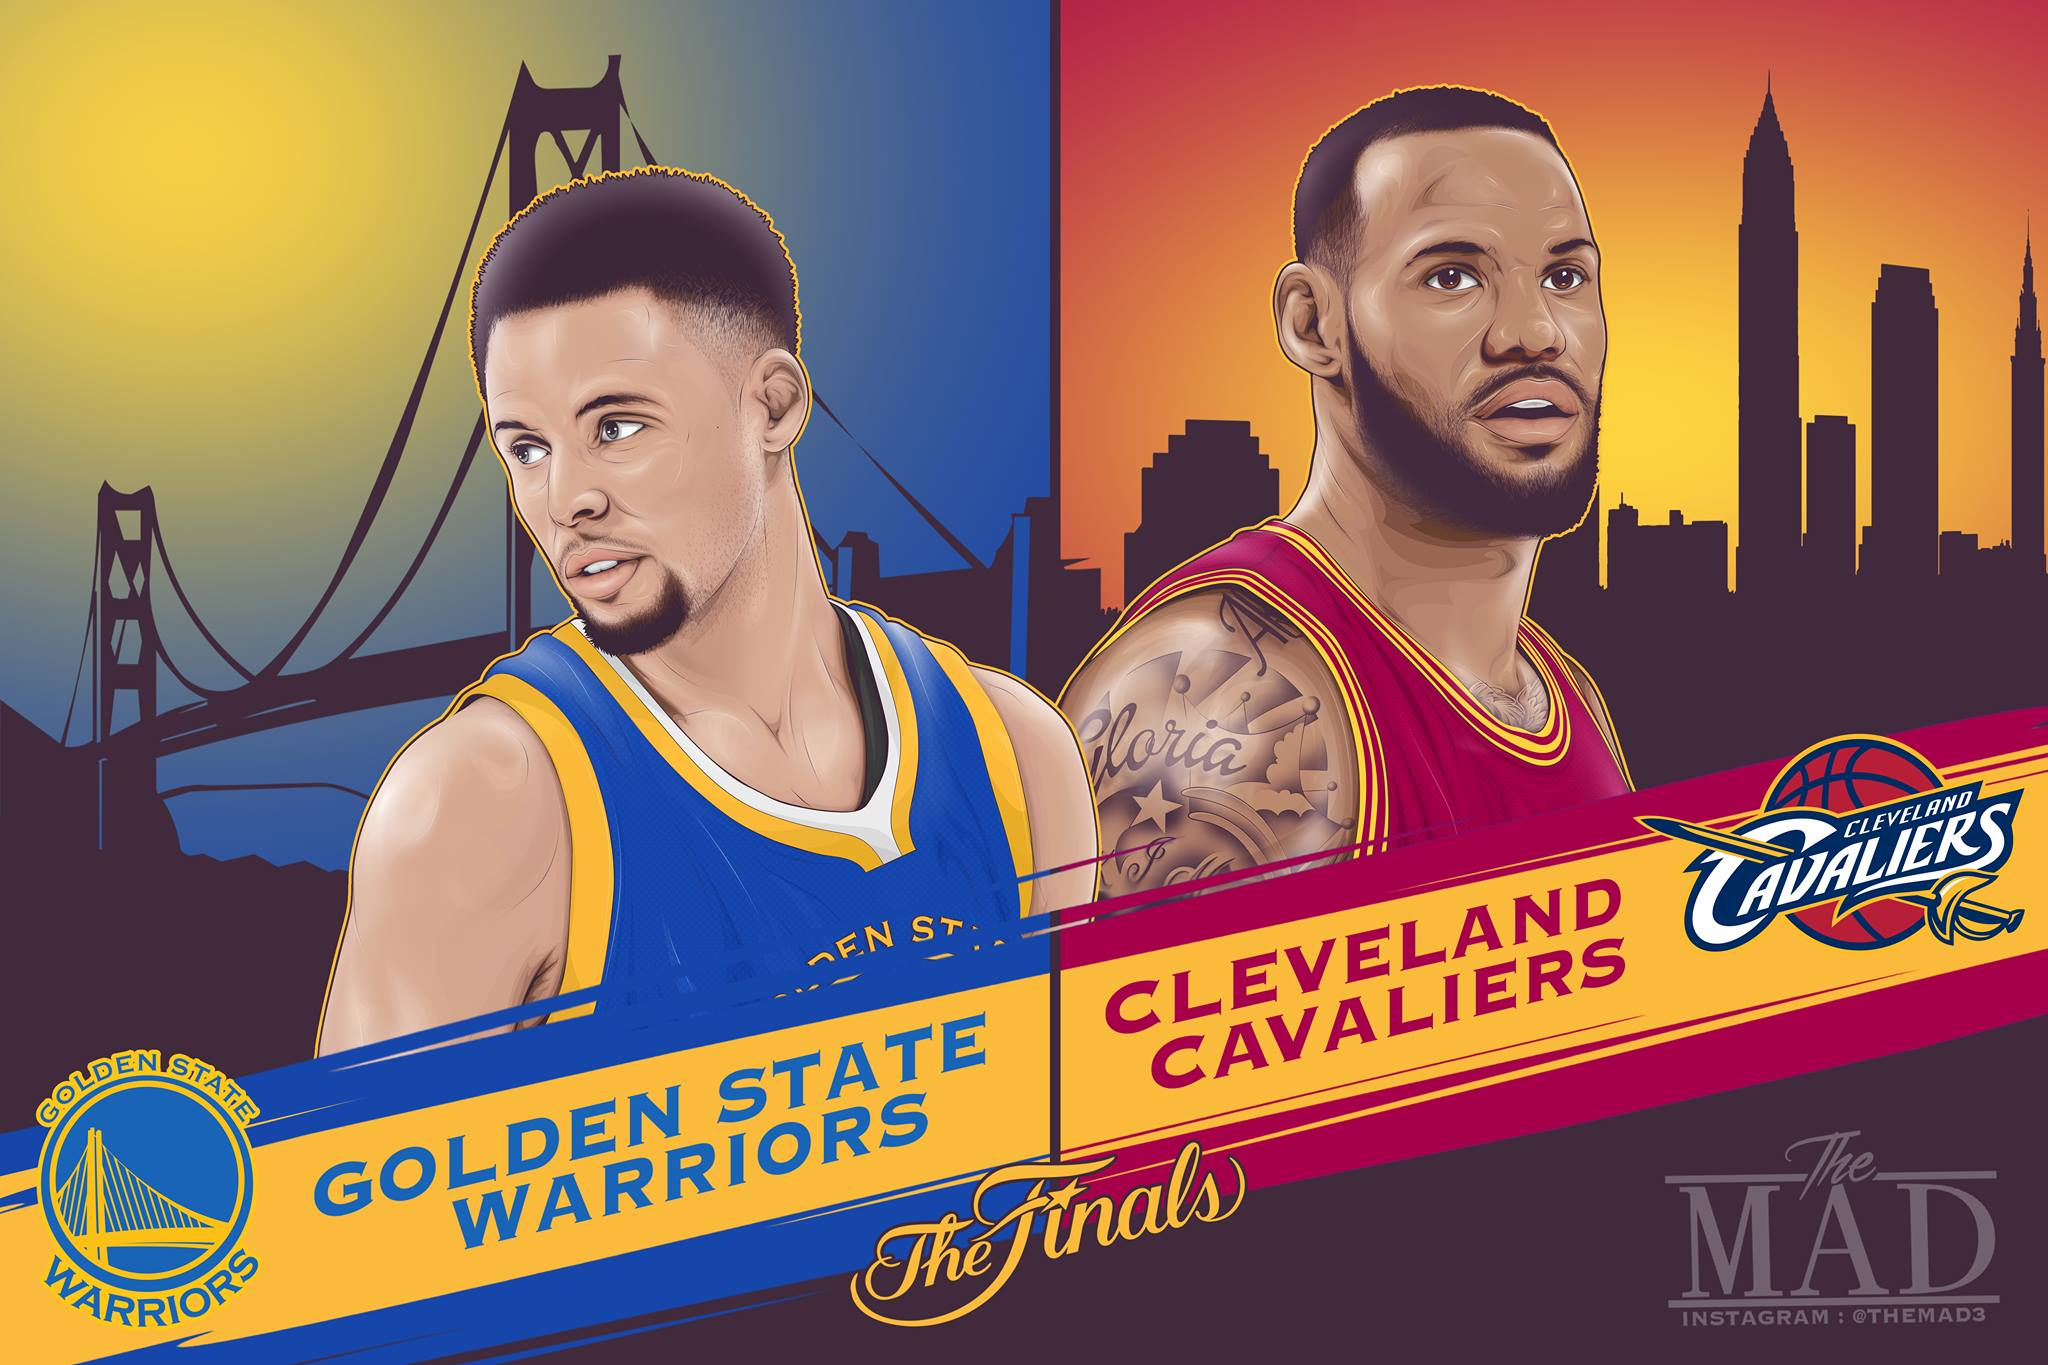 Cavaliers vs Warriors NBA Finals Game Two Illustration